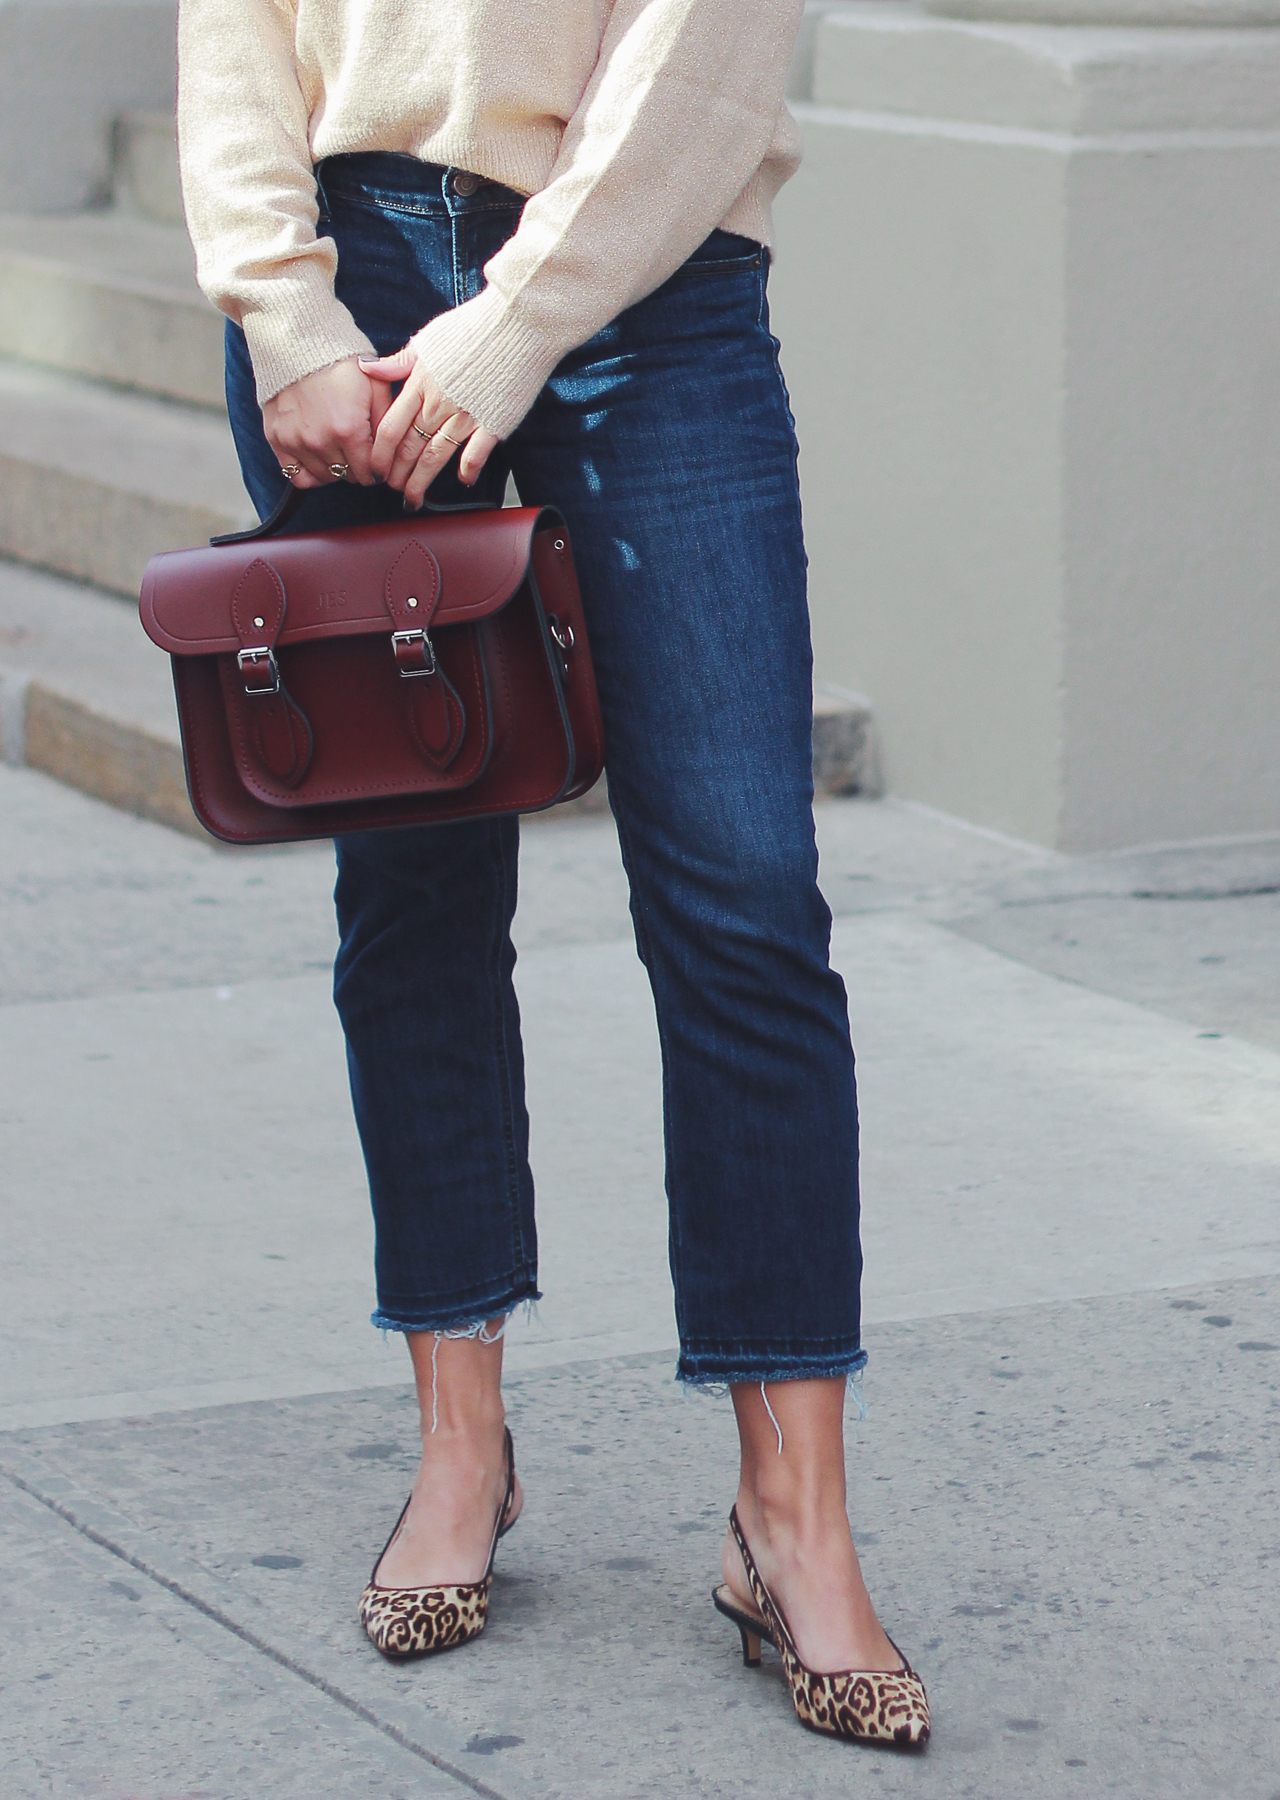 The Steele Maiden: Casual Thanksgiving Day Outfit - Glitter Sweater, Cropped Jeans and Kitten Heels